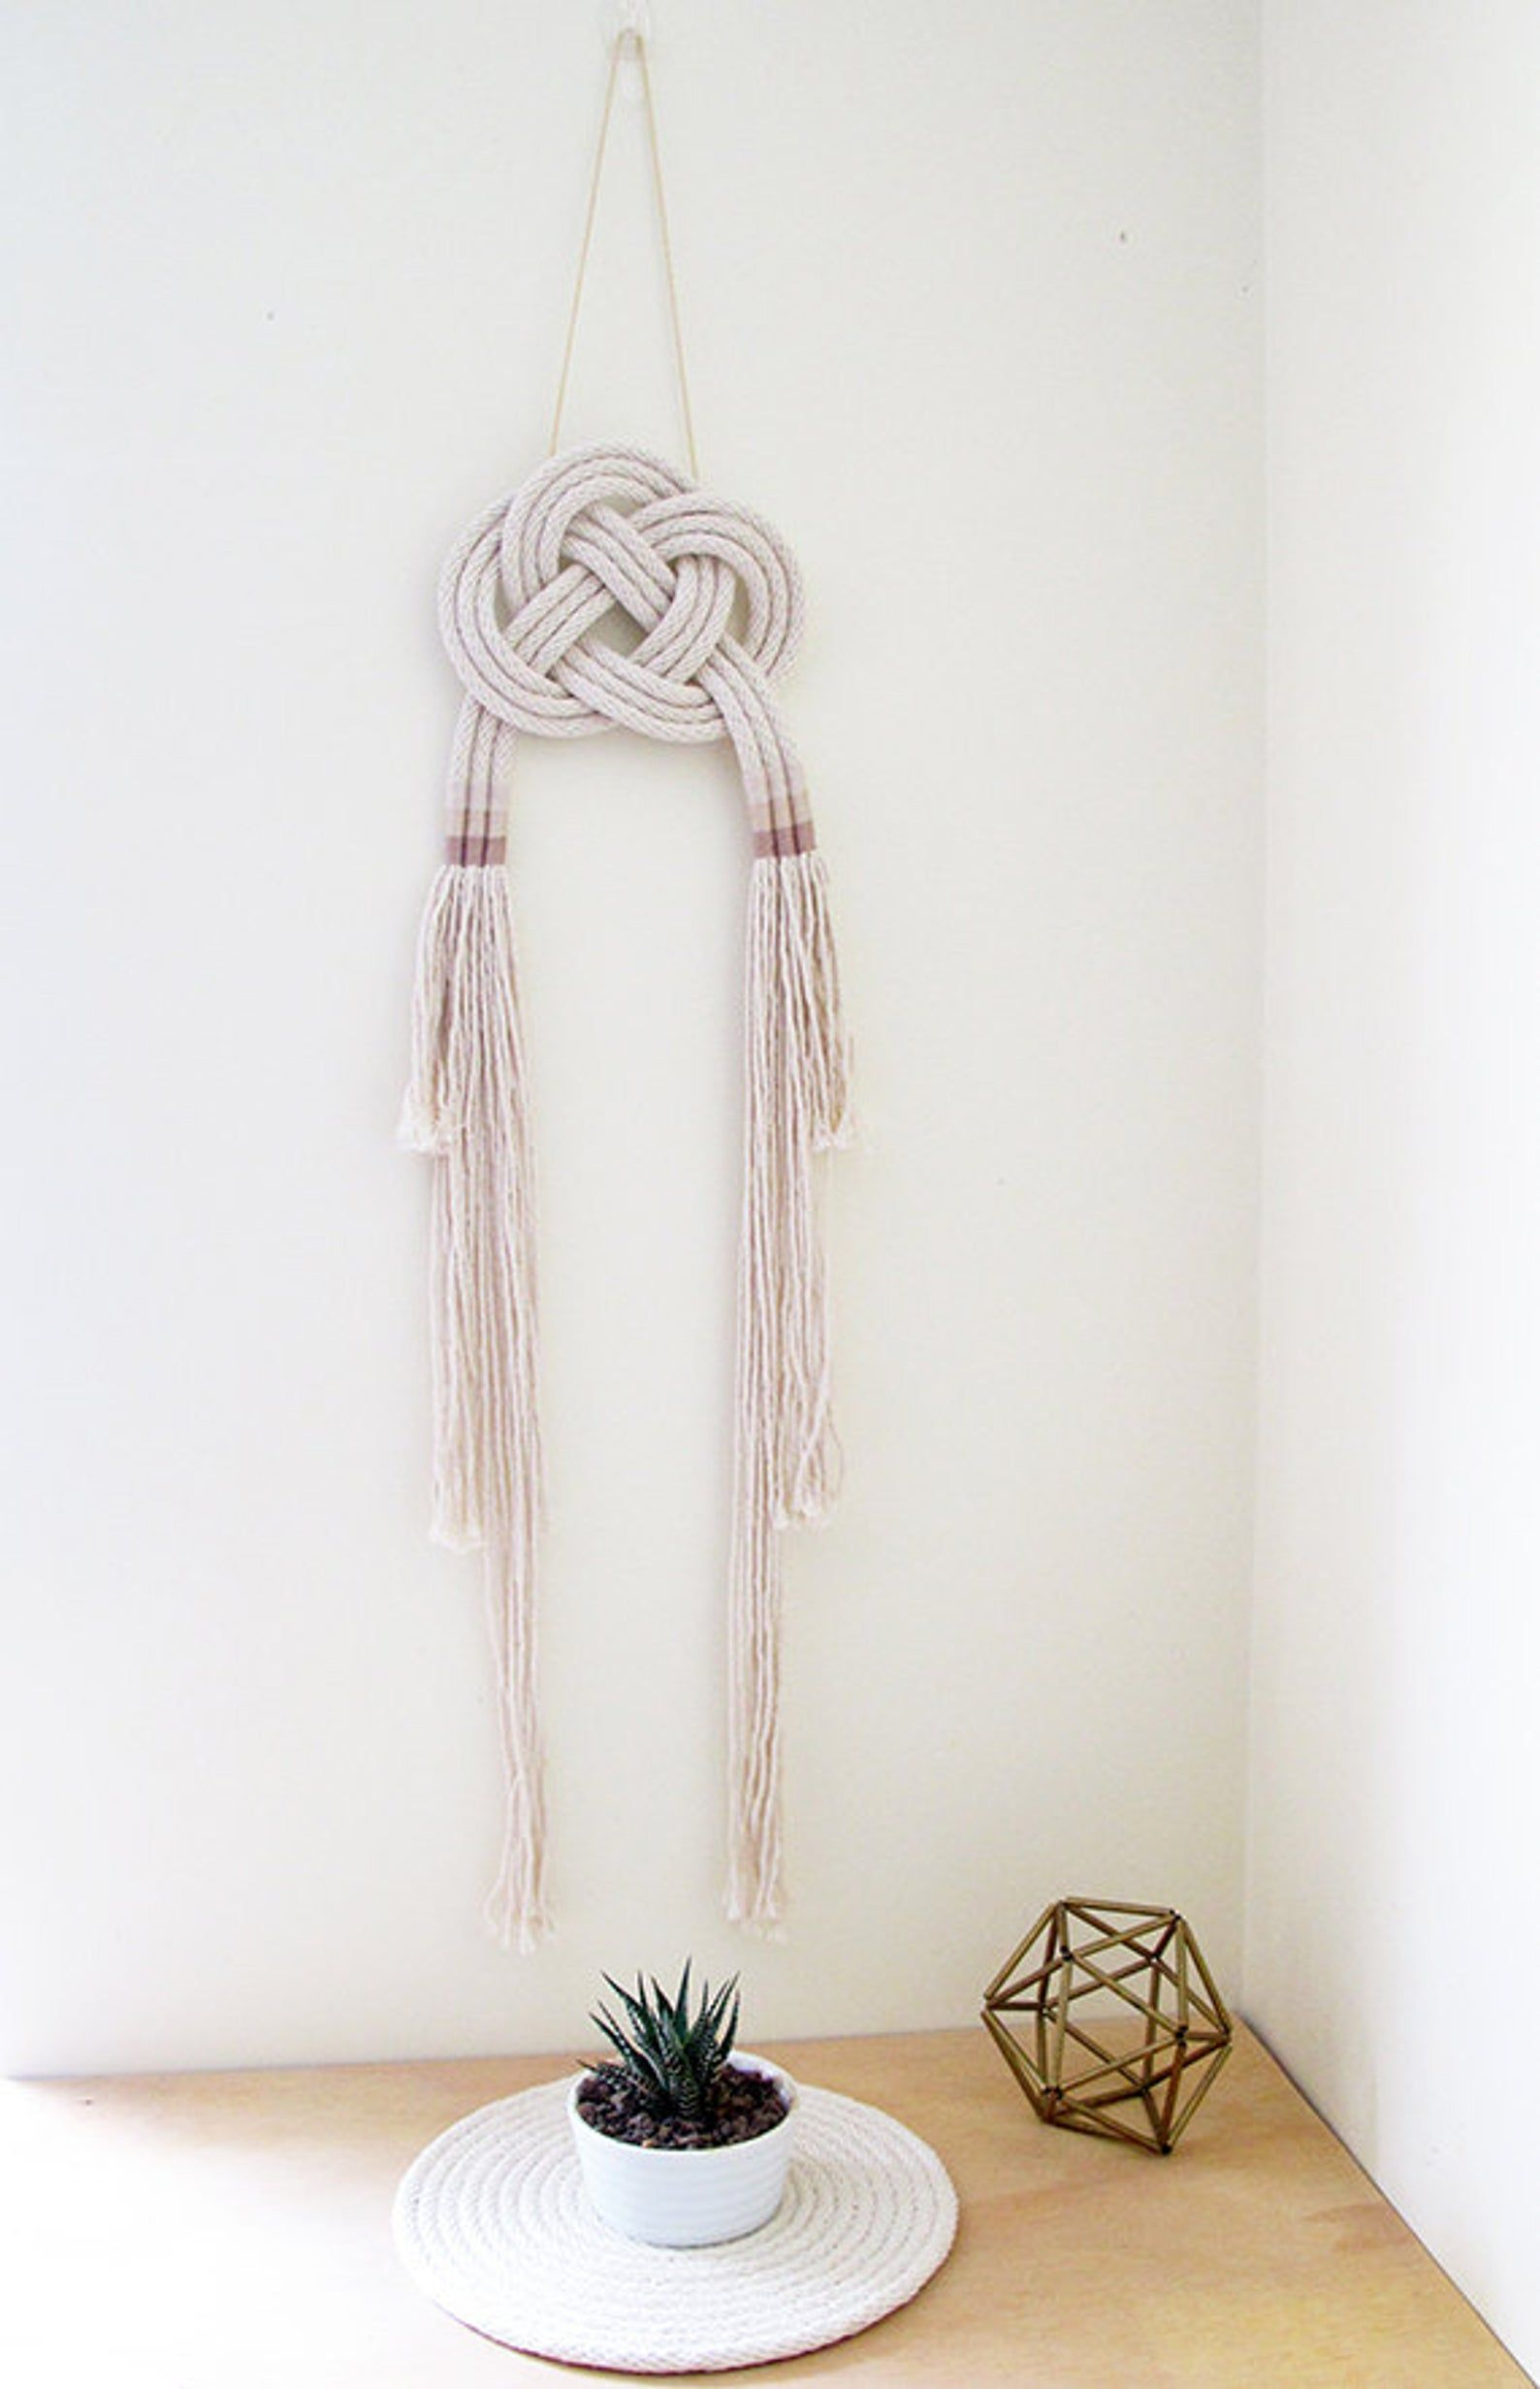 Knot Wall Art Celtic Knot Tassel Wall Hanging Natural Cotton Rope Handmade Rope Art Neutral Tones Rope Wall Hanging Nautical Decor Tassel Wall Hang Celtic Knot Rope Art